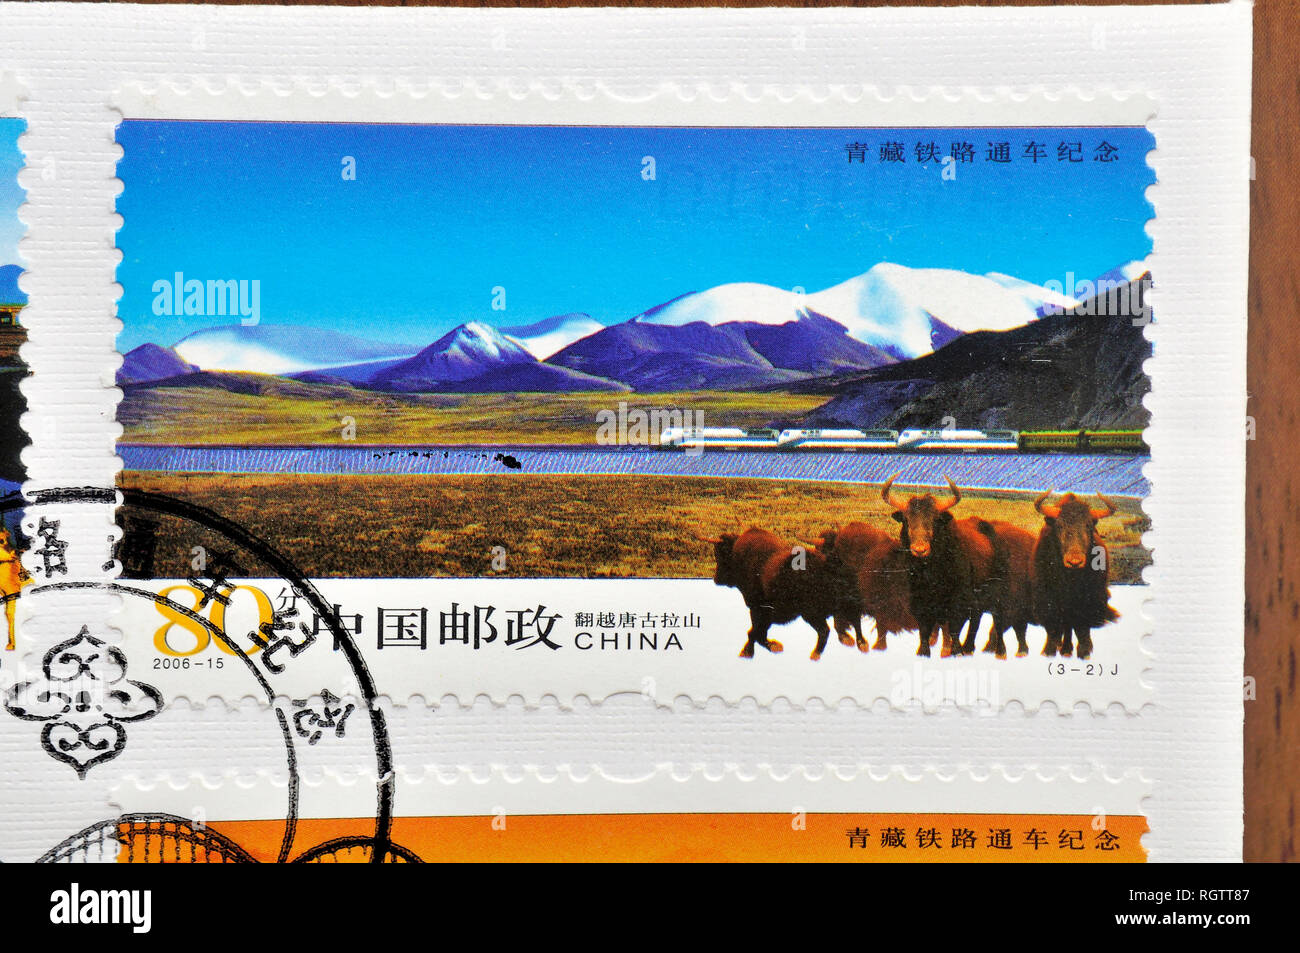 CHINA - CIRCA 2006: A stamp printed in China shows 2006-15 Qinghai - Tibet railway Open to Traffic, circa 2006., circa 2006 Stock Photo